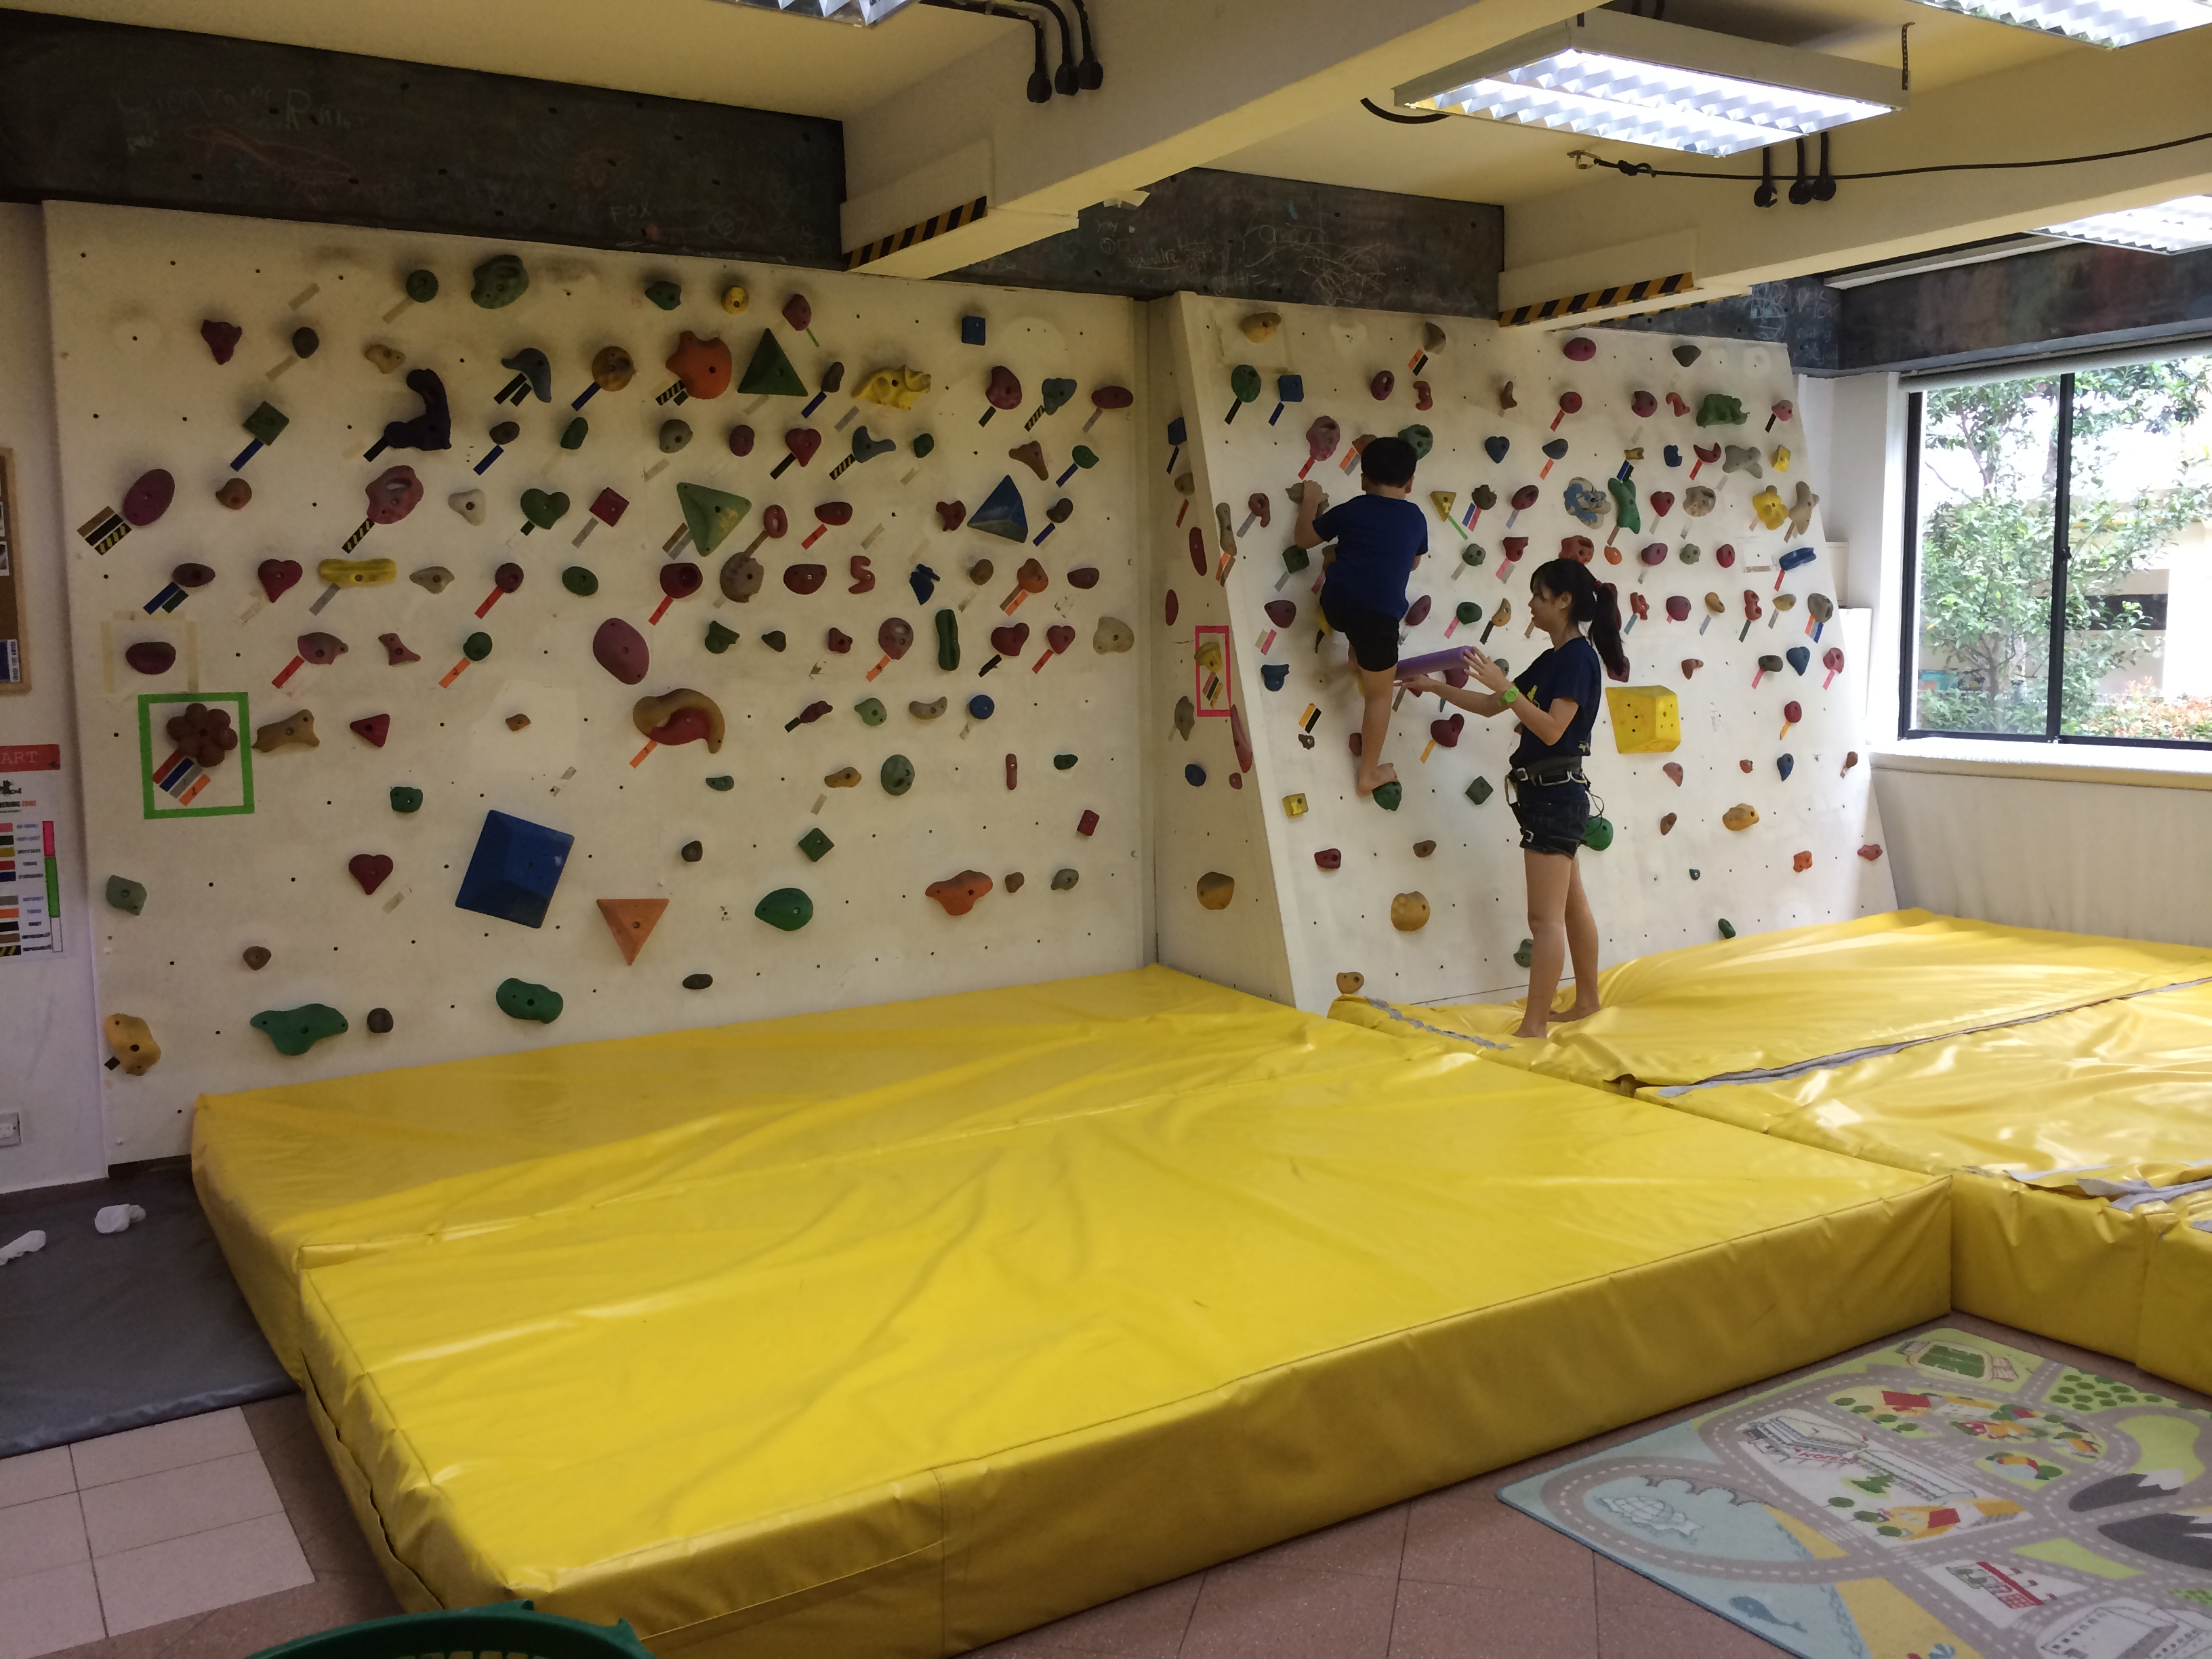 6th Birthday Party at The Rock School – Mummy Ed